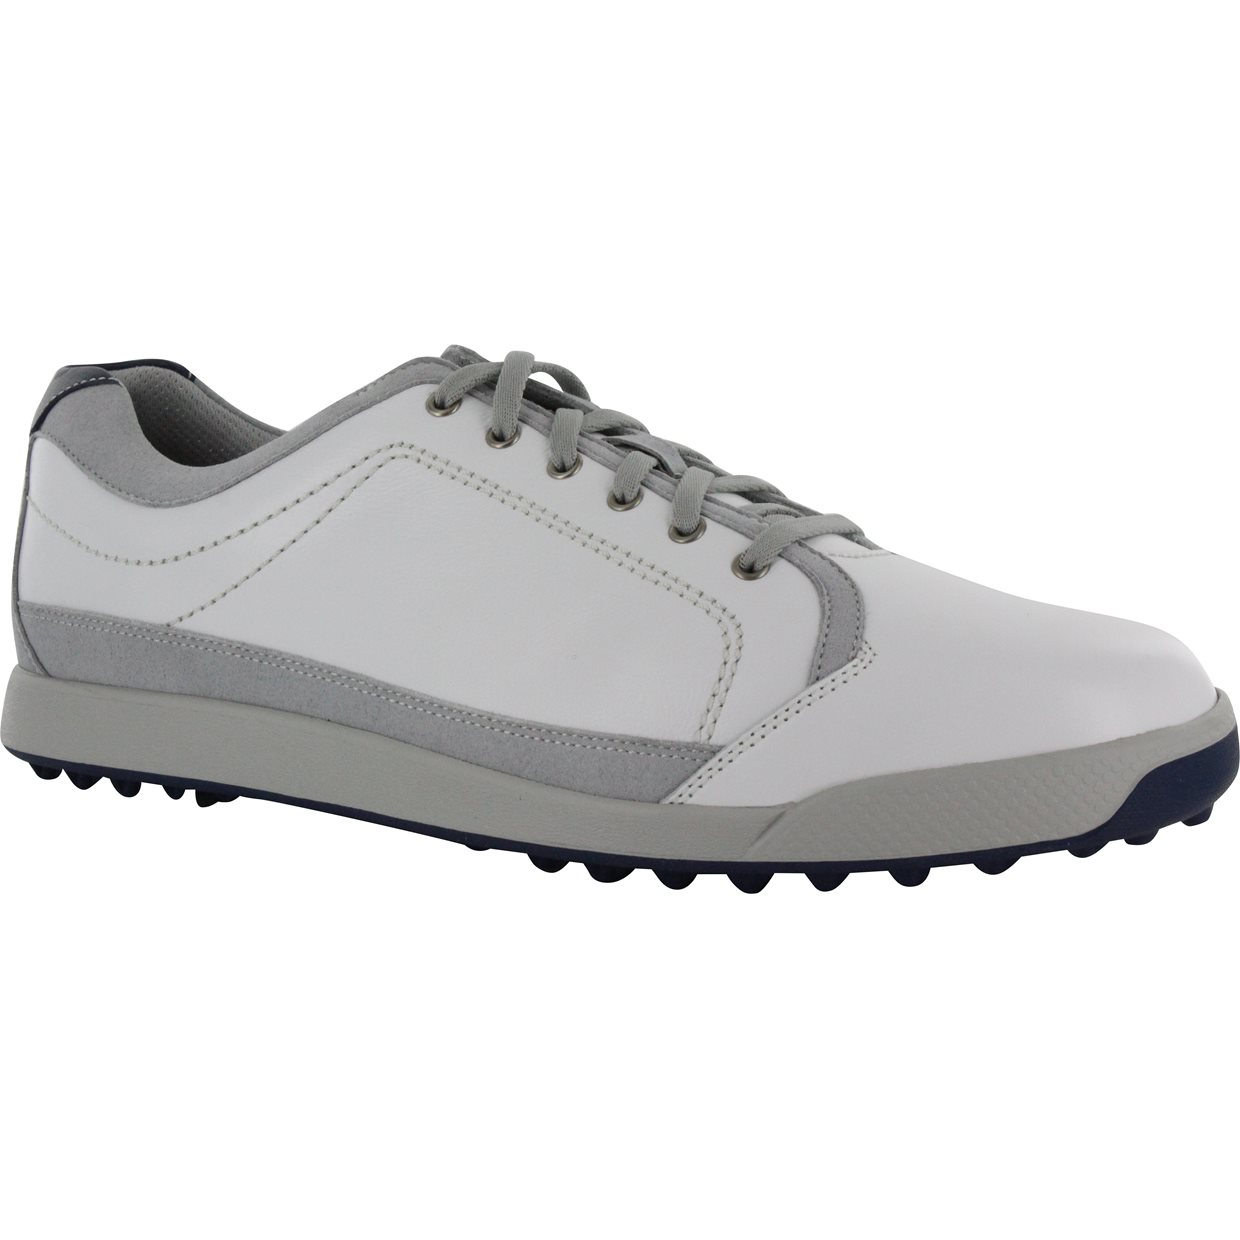 Footjoy Contour Casual Golf Shoes White